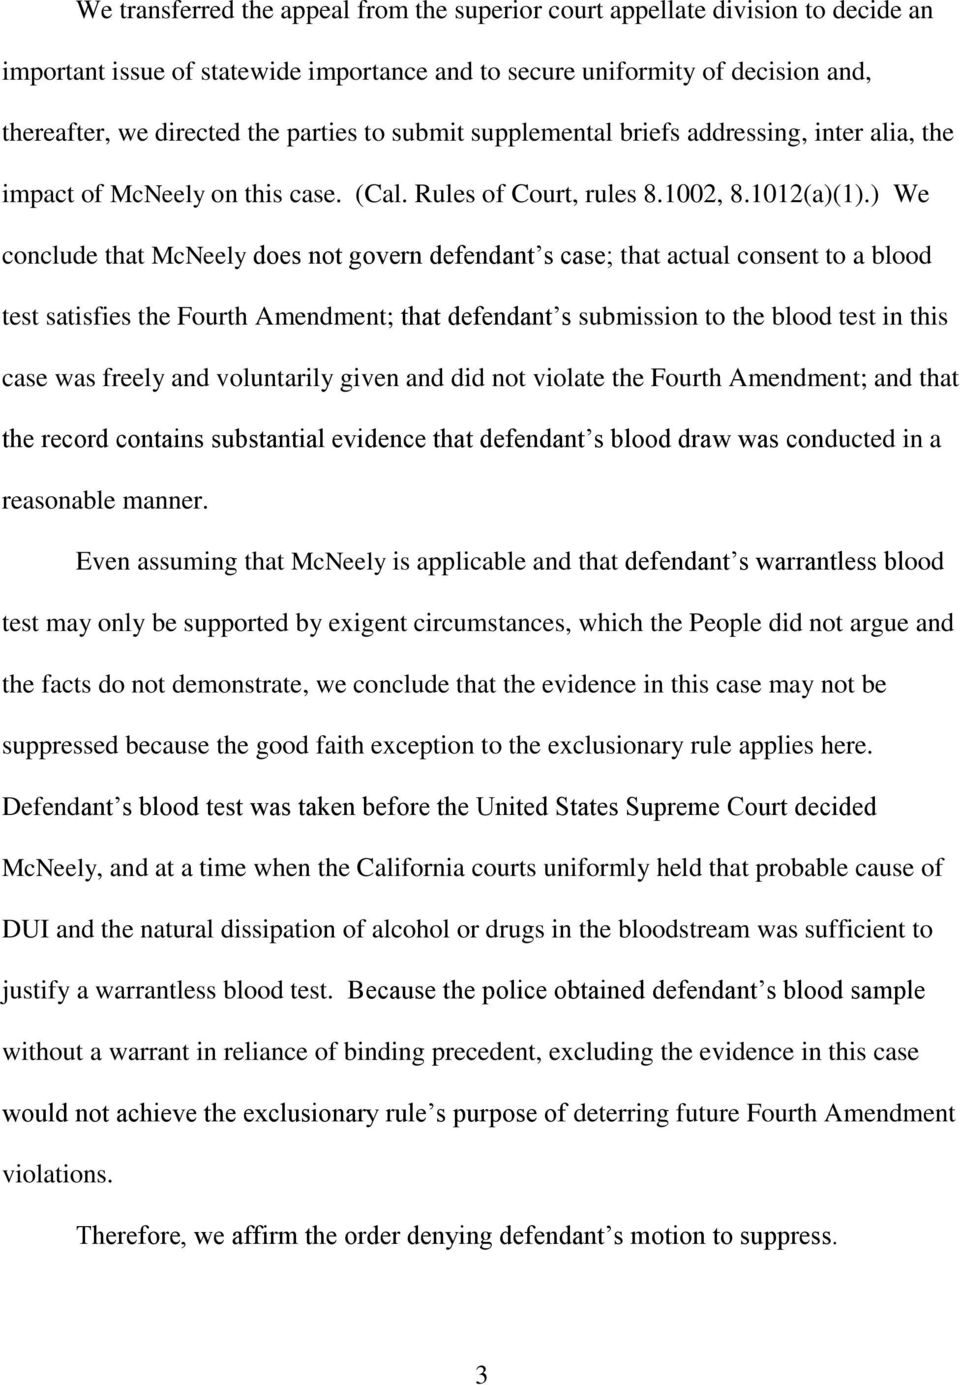 ) We conclude that McNeely does not govern defendant s case; that actual consent to a blood test satisfies the Fourth Amendment; that defendant s submission to the blood test in this case was freely